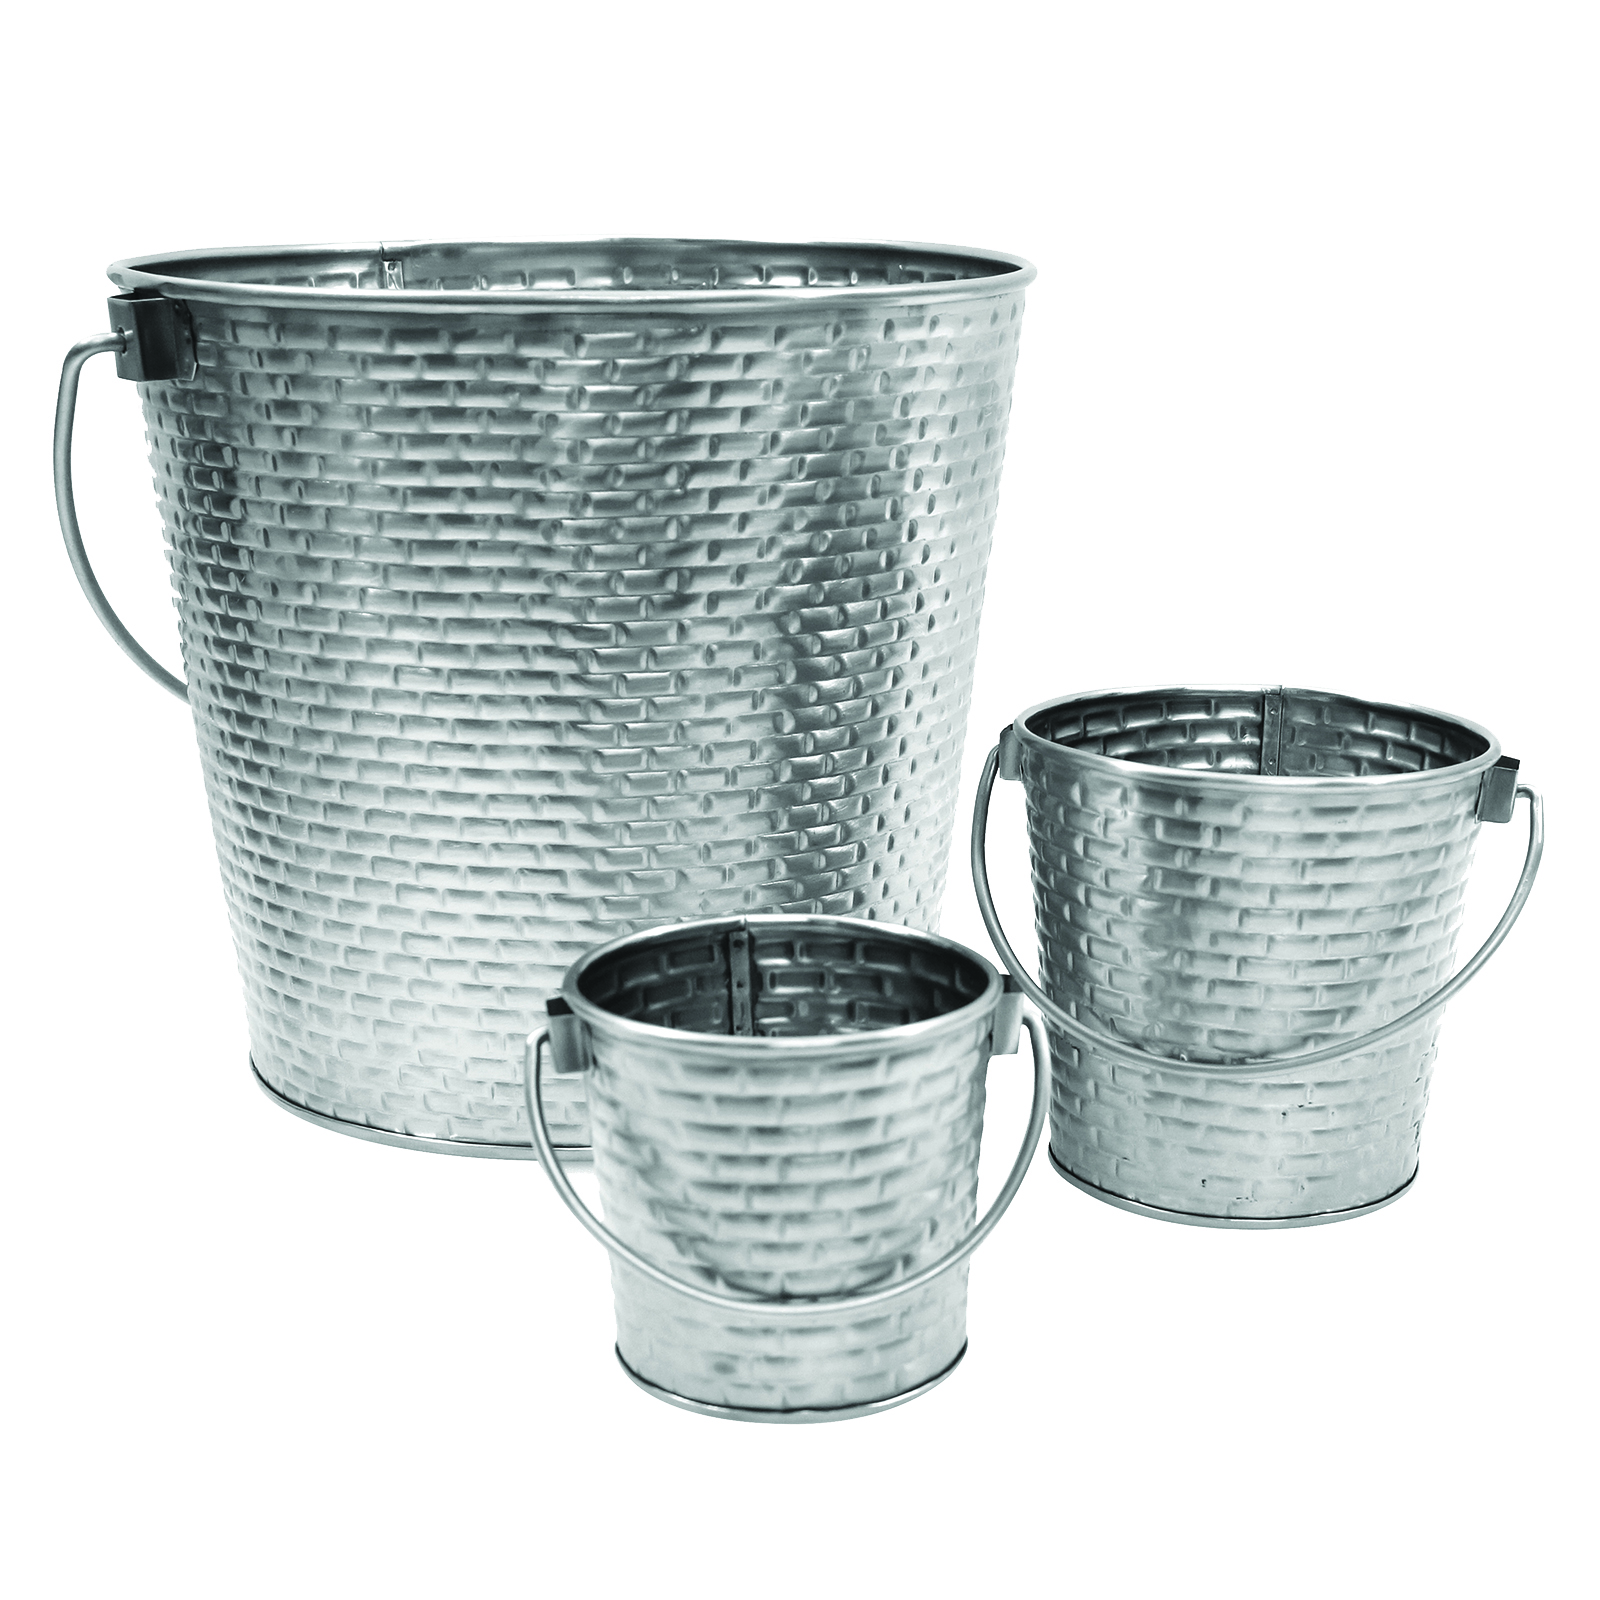 TableCraft Products GTSS33 serving pail